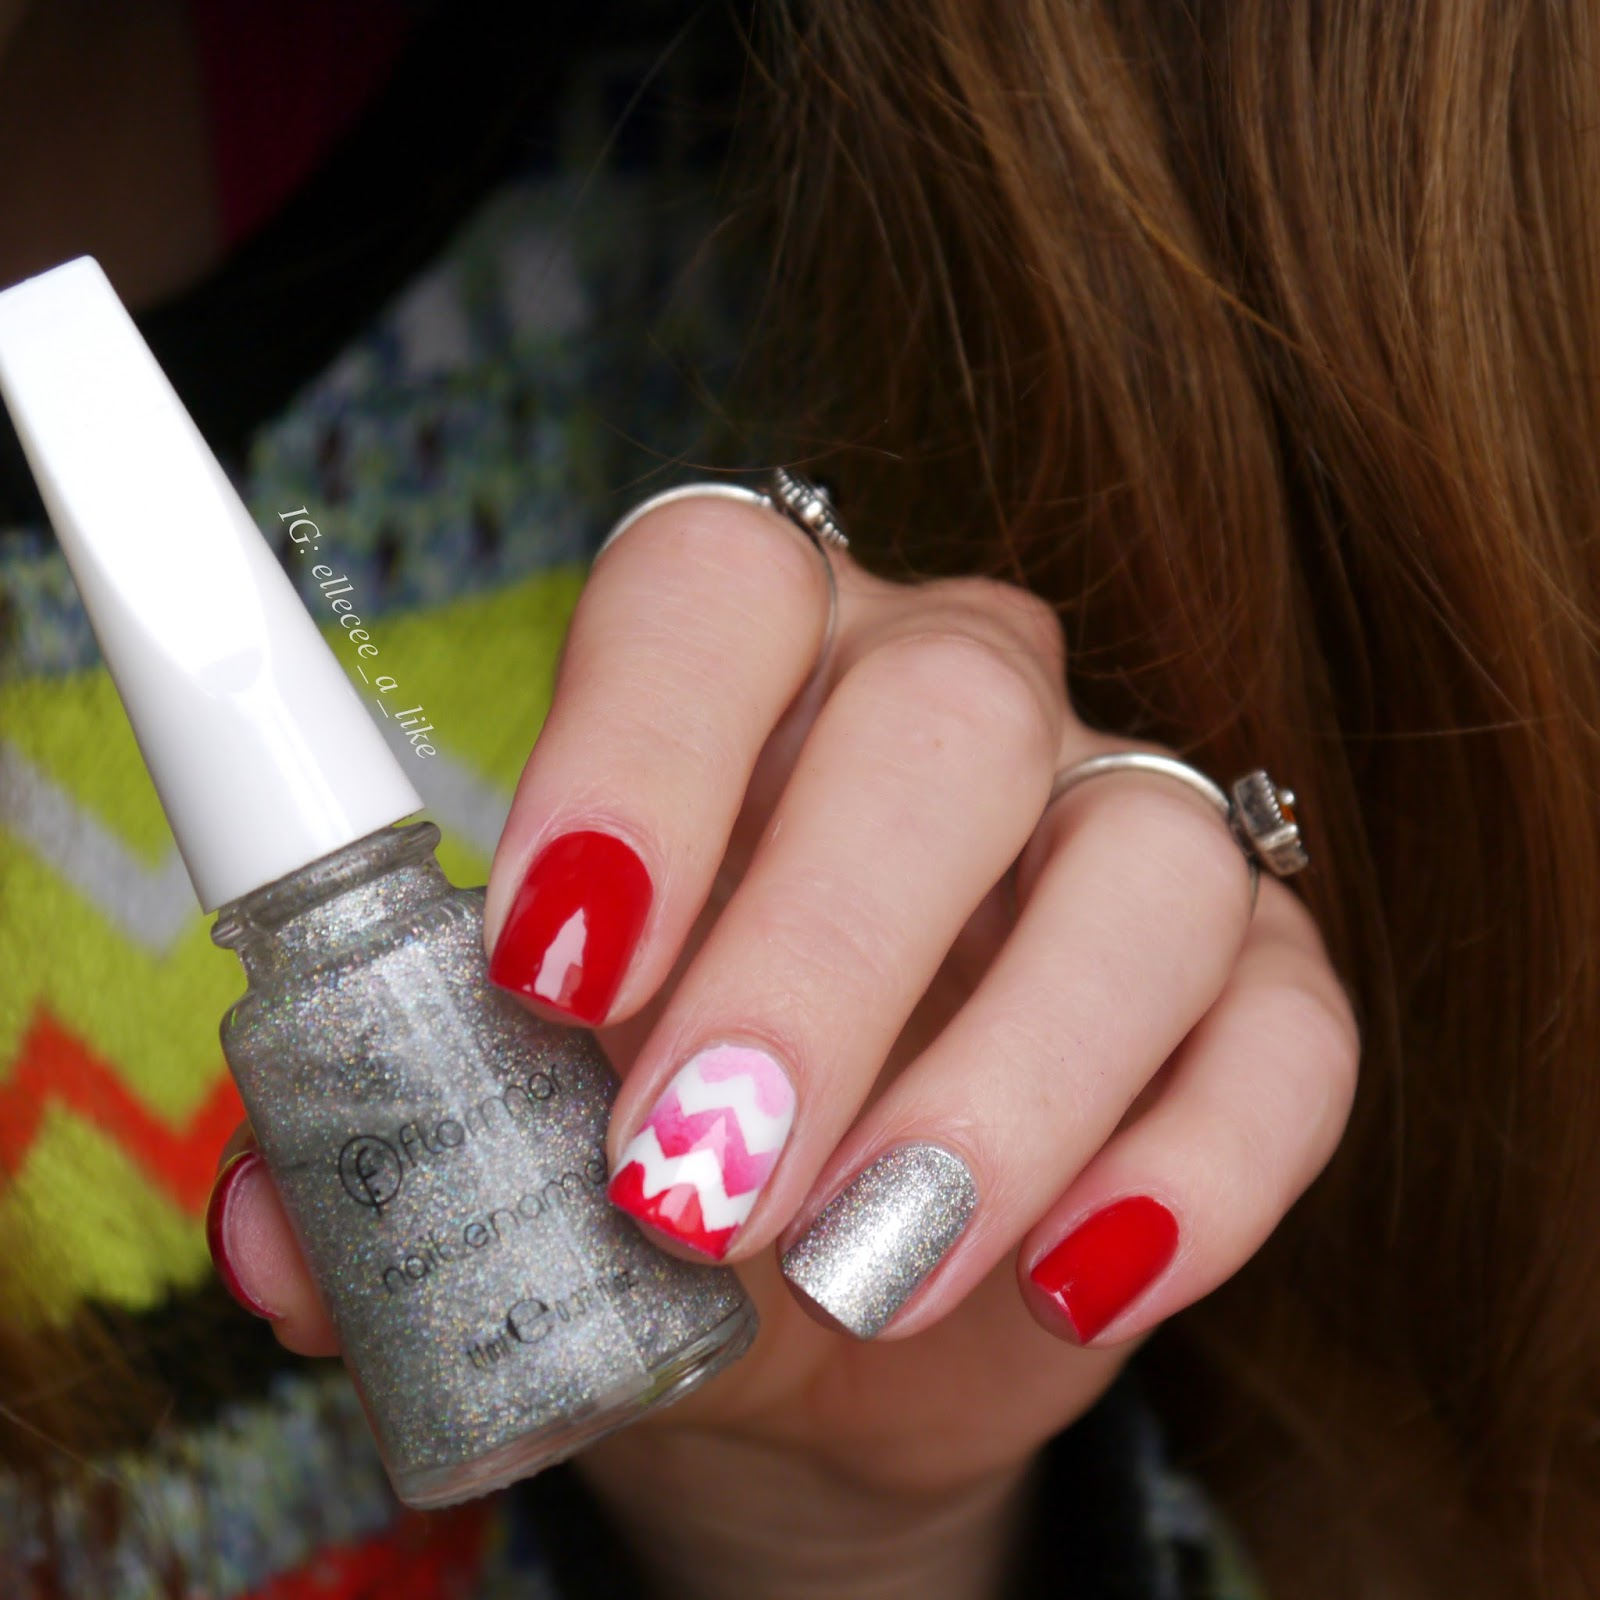 lack-a-like: Skittle Nails in Rot und Silber